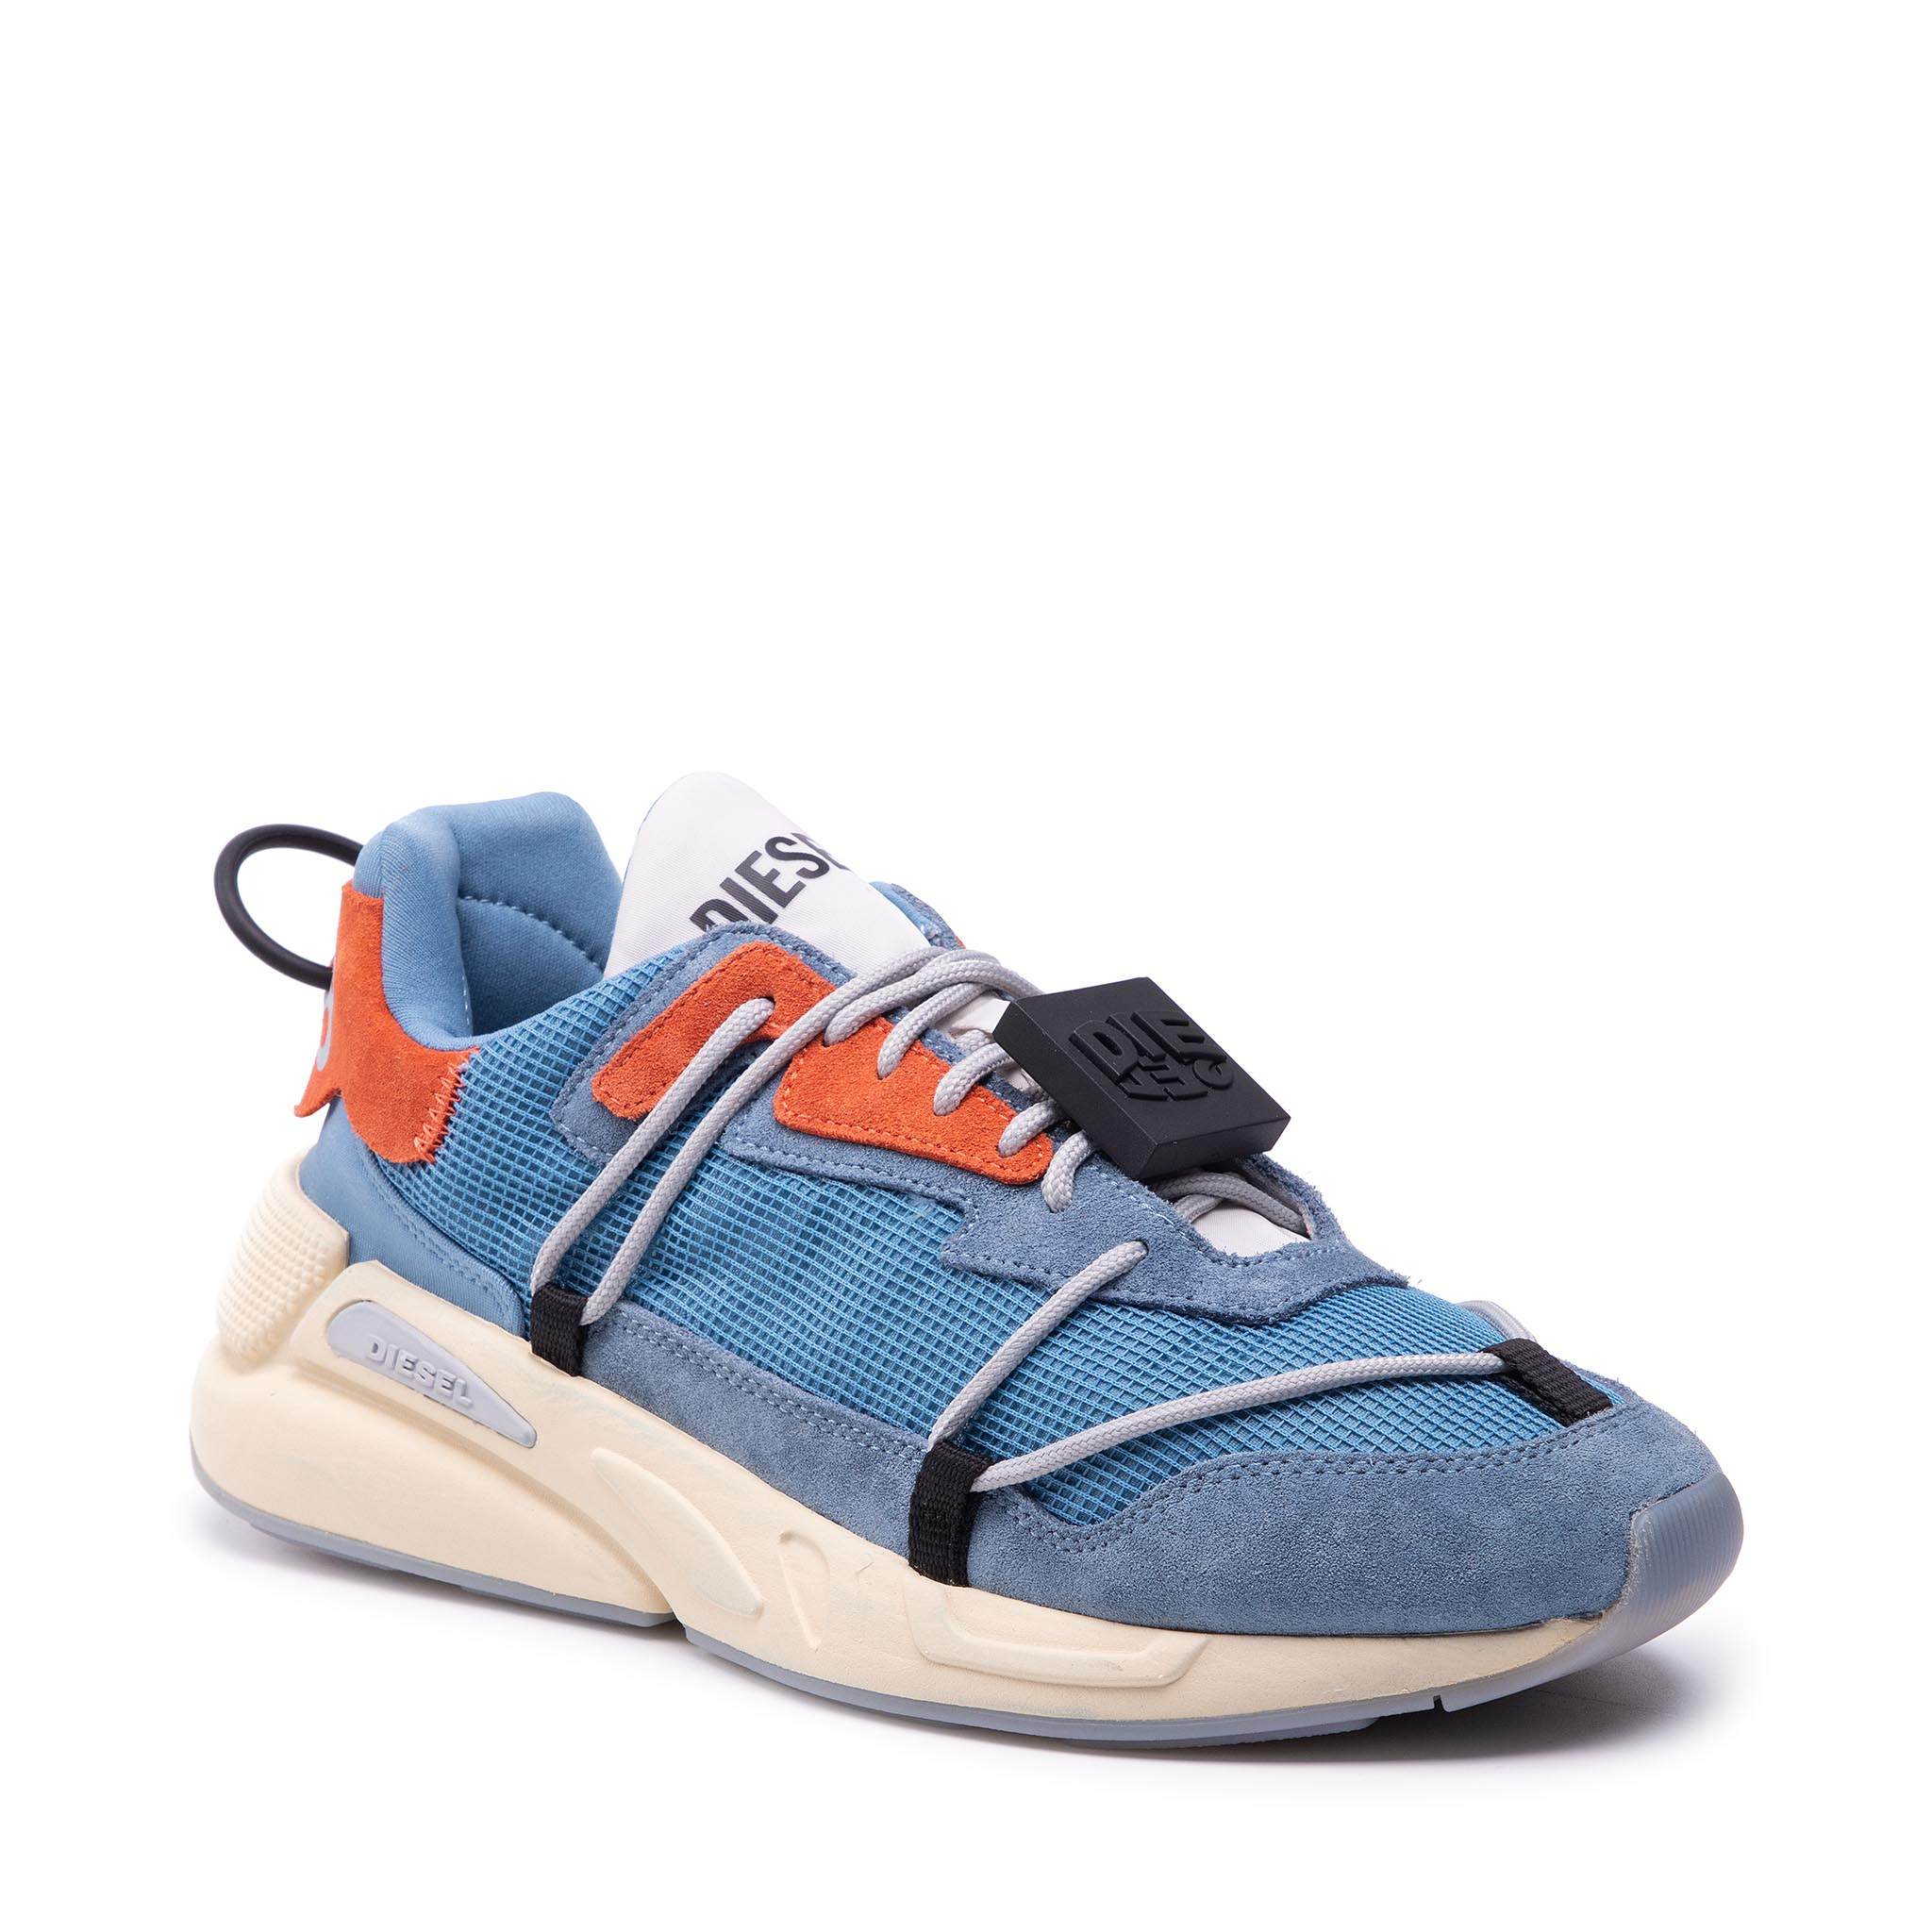 Sneakers DIESEL - S-Serendipity Lace Y02546 P4197 H8744 Blue Haven/Flame